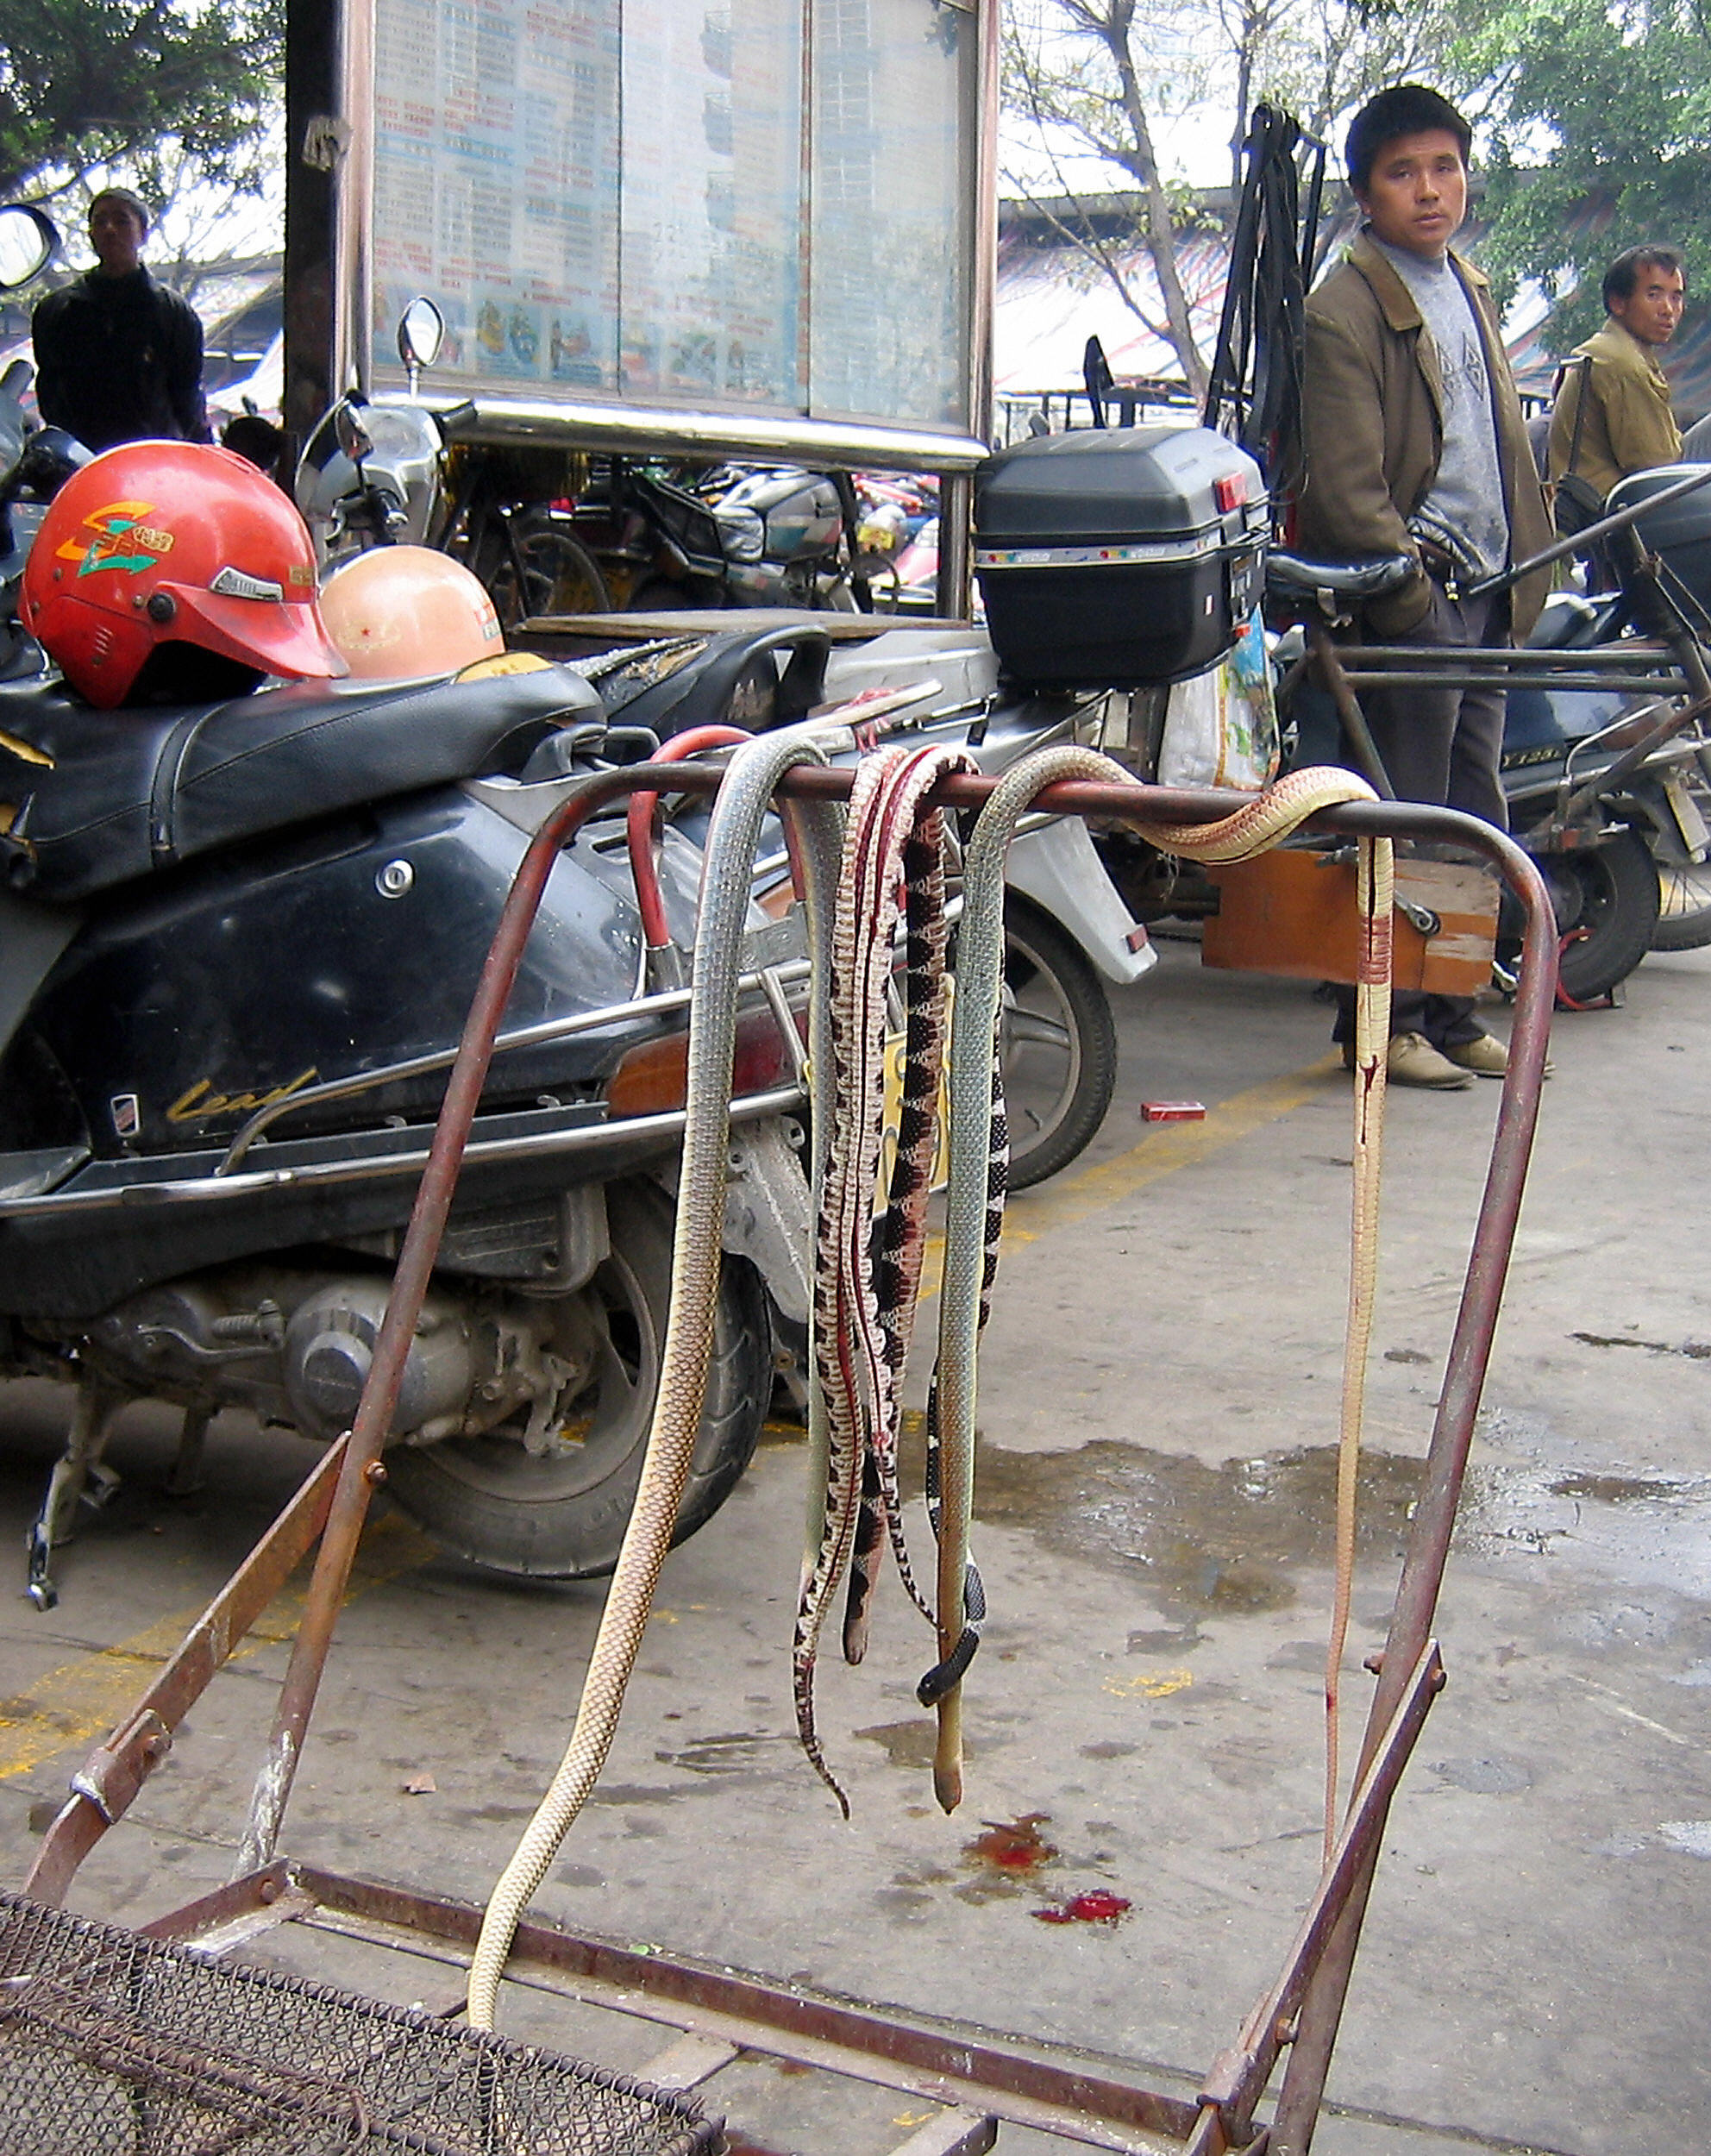 Various type of snakes hang from a push-cart at the Xi Cun meat market in Dongguan, southern China's Guangdong province 23 January 2005. (ROBERT J.SAIGET/AFP via Getty Images)